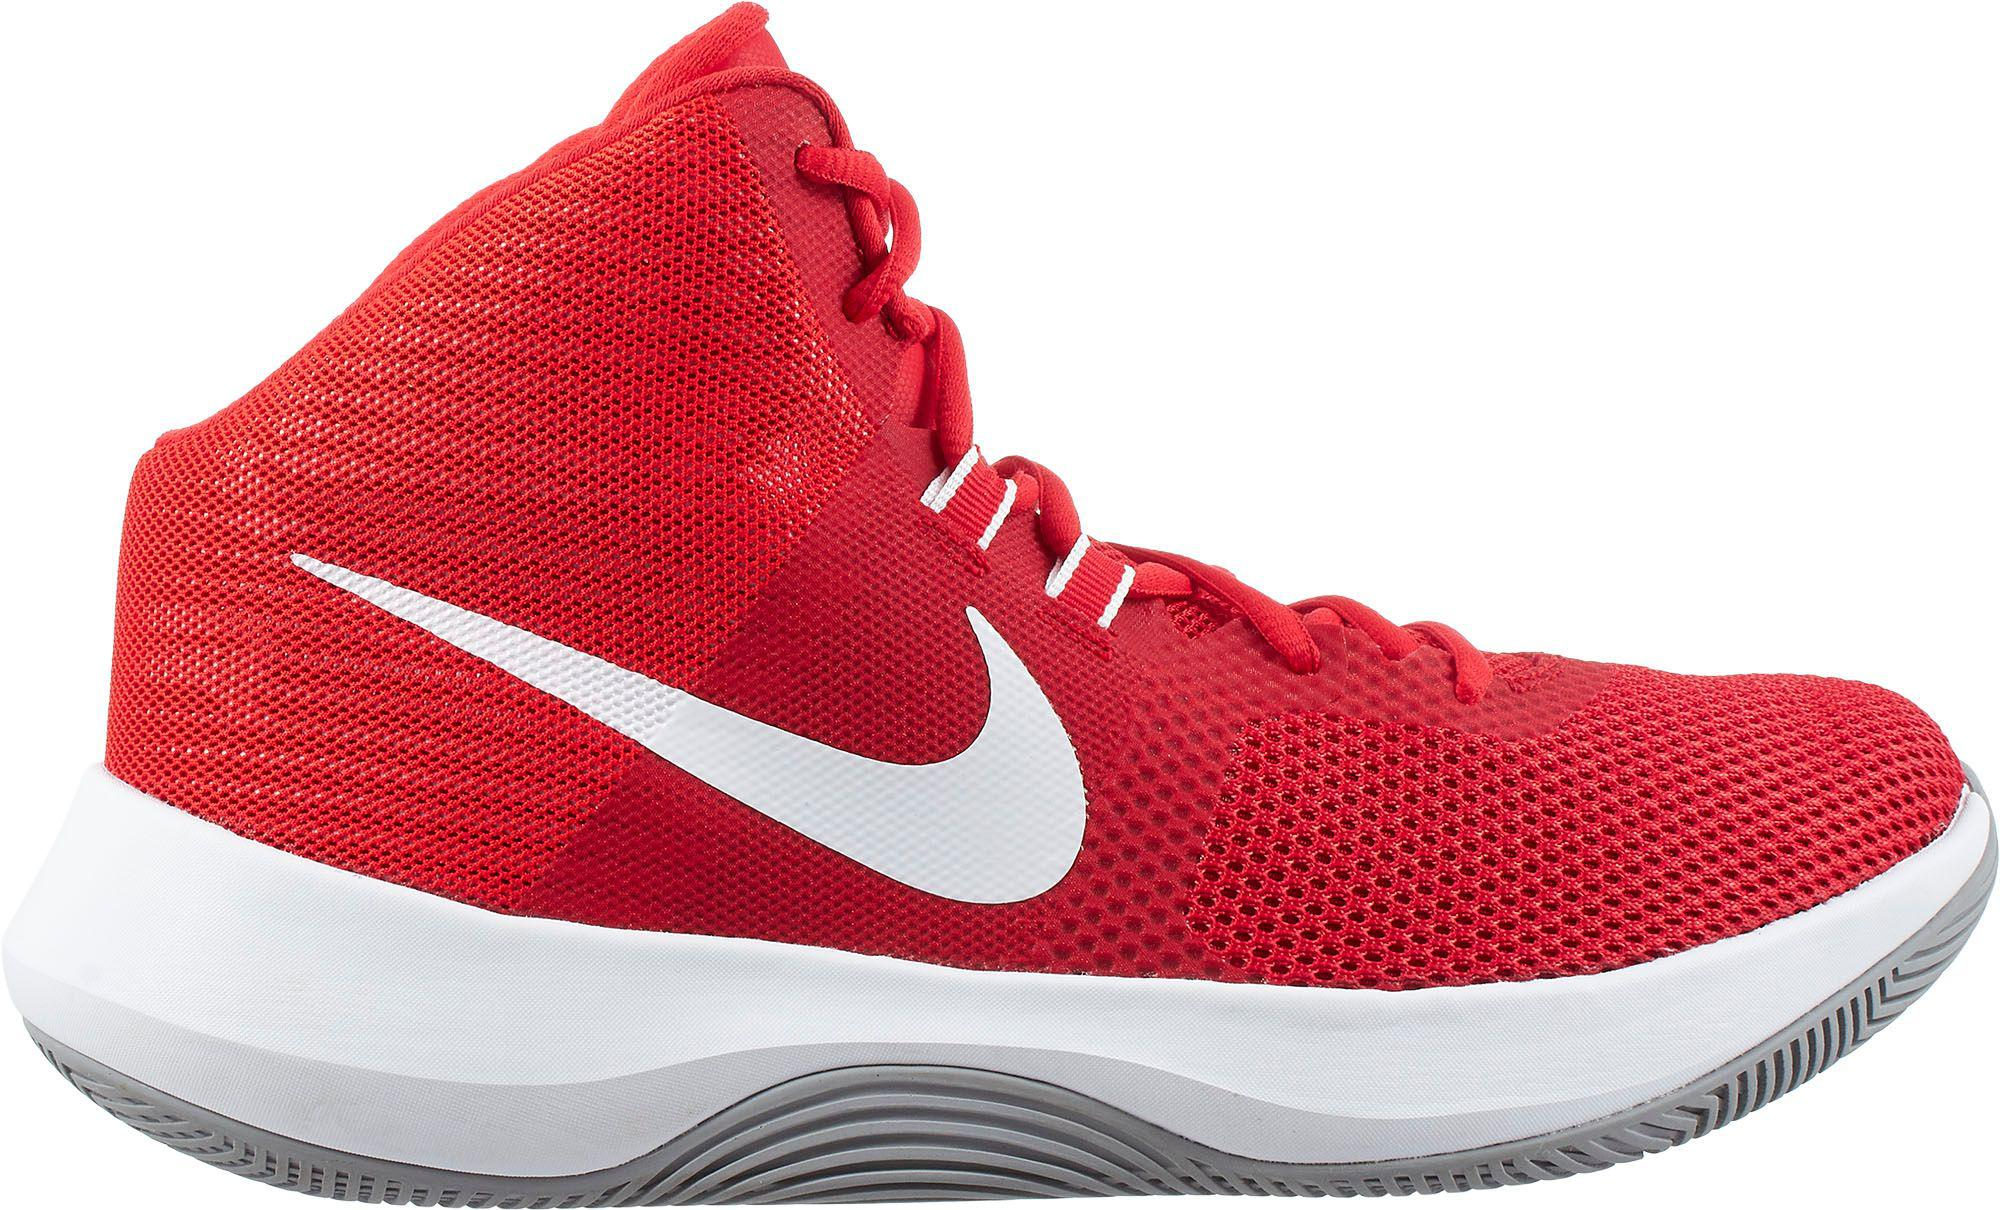 b8b4a79ba107 Lyst - Nike Air Precision Basketball Shoes in Red for Men